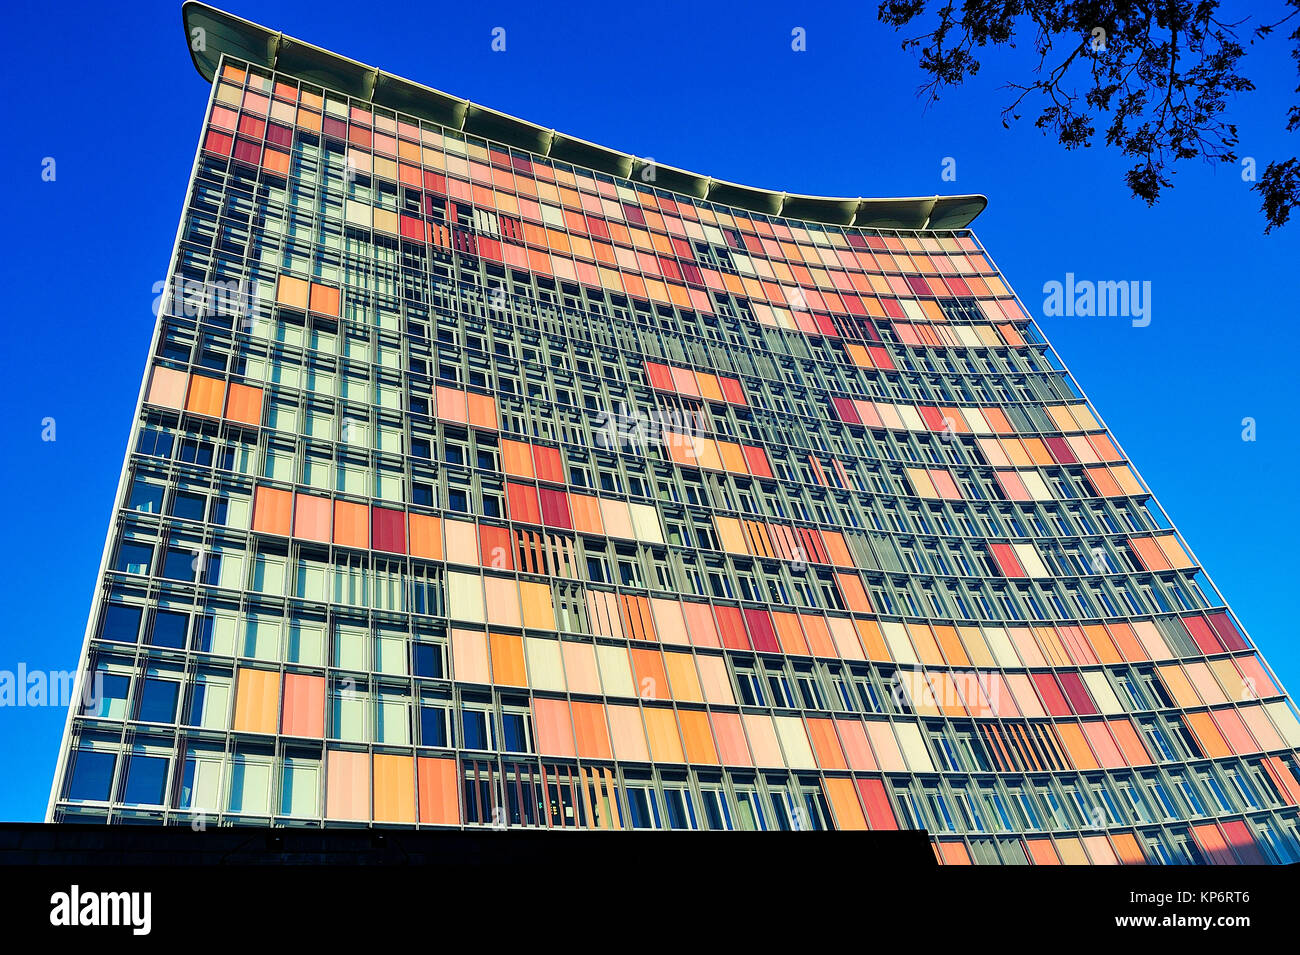 The GSW Hochhaus Building, by Matthias Sauerbruch and Louisa Hutton, 1989. Berlin, Germany - Stock Image